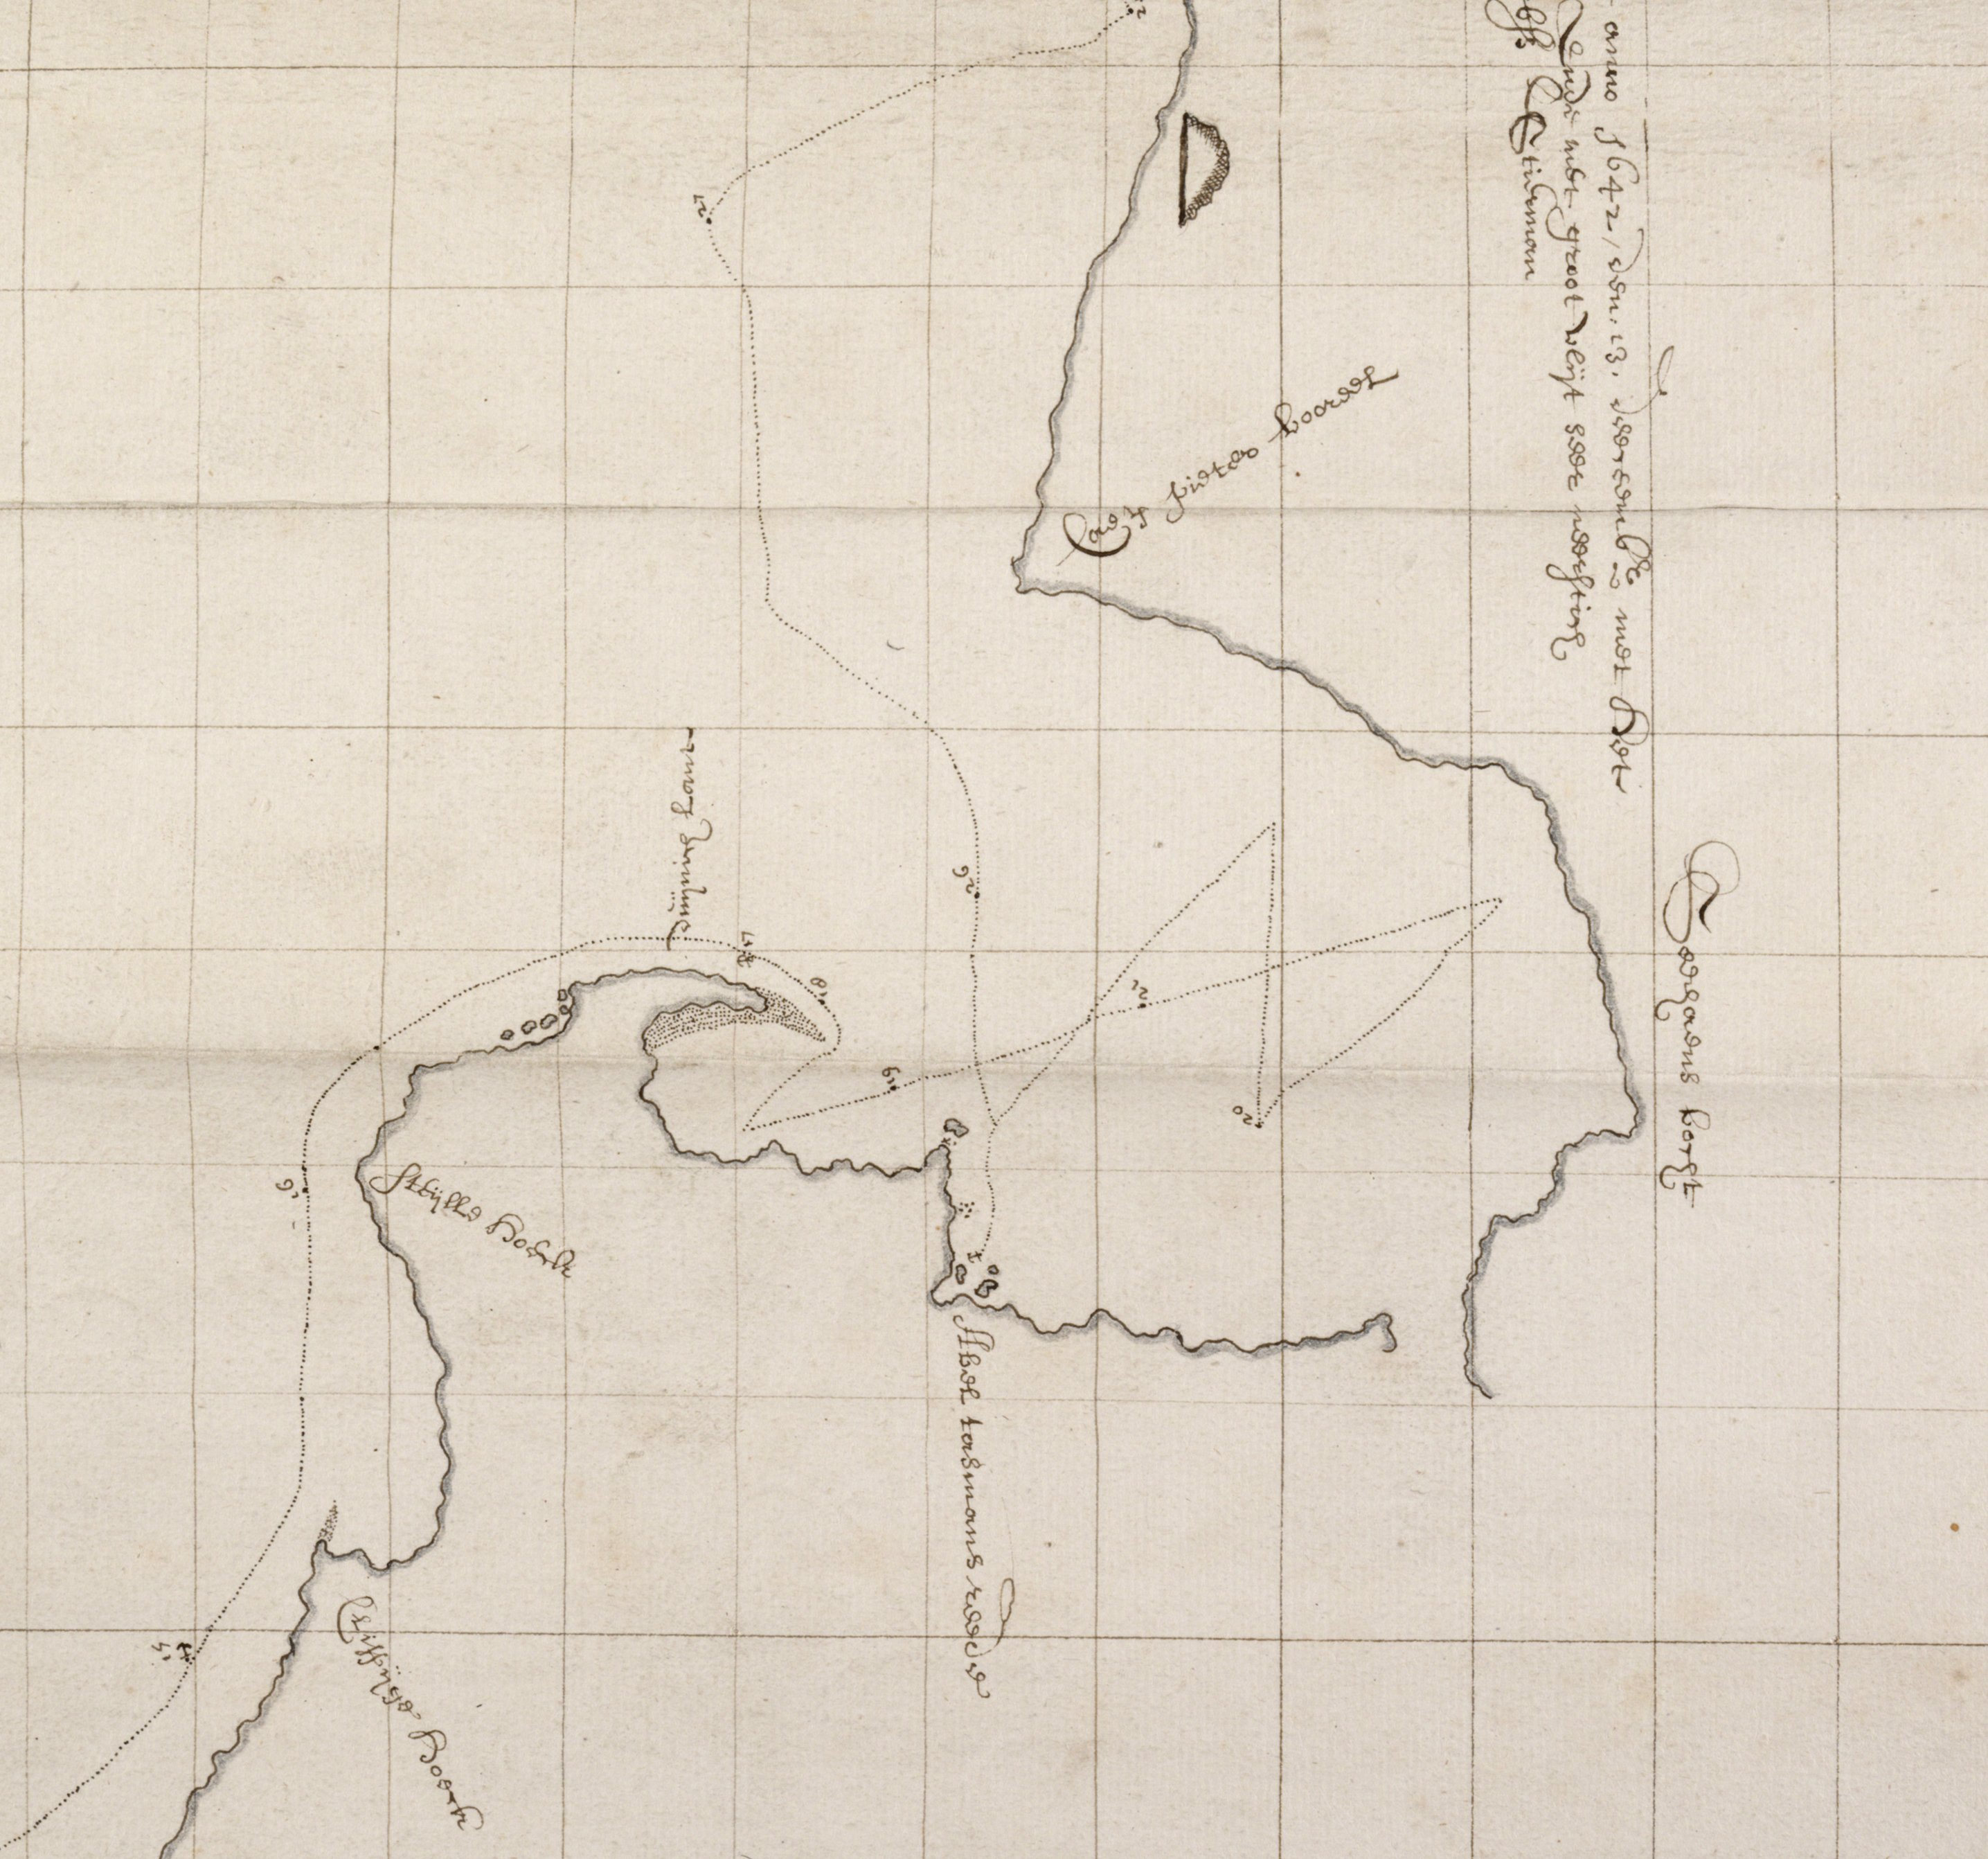 Part of a map attributed to Visscher which shows a gap where it was thought au undiscovered passage might exist